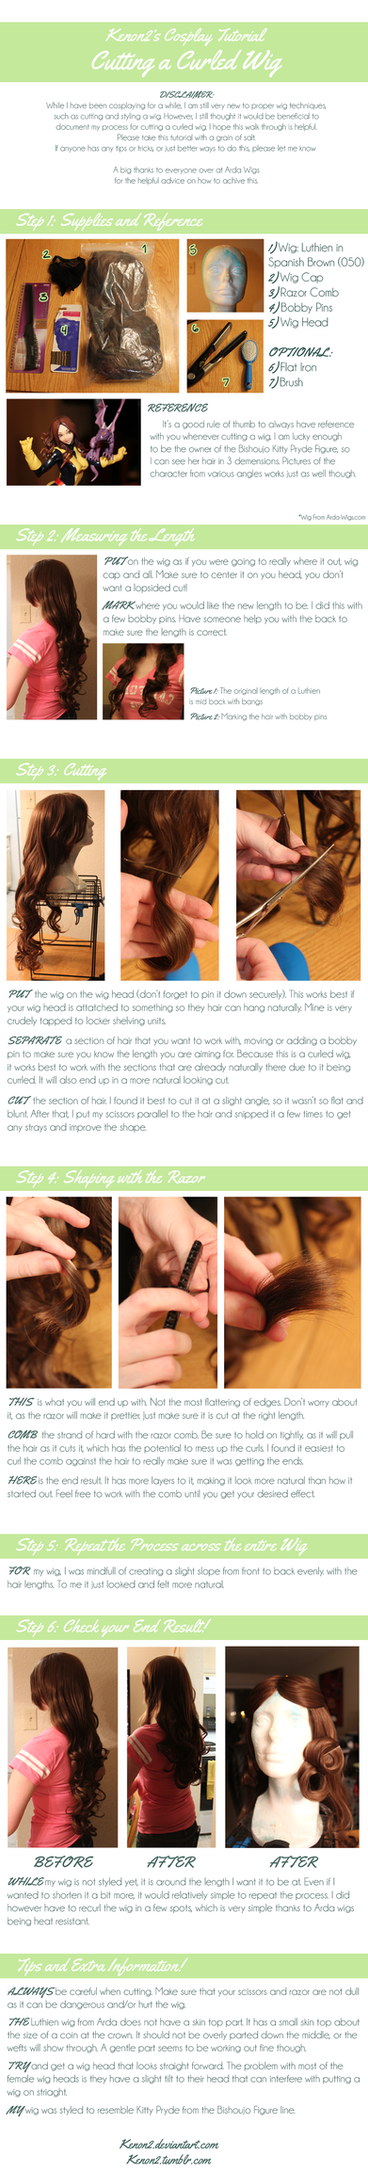 Wig Tutorial: Cutting a Curled Wig by LilyBat